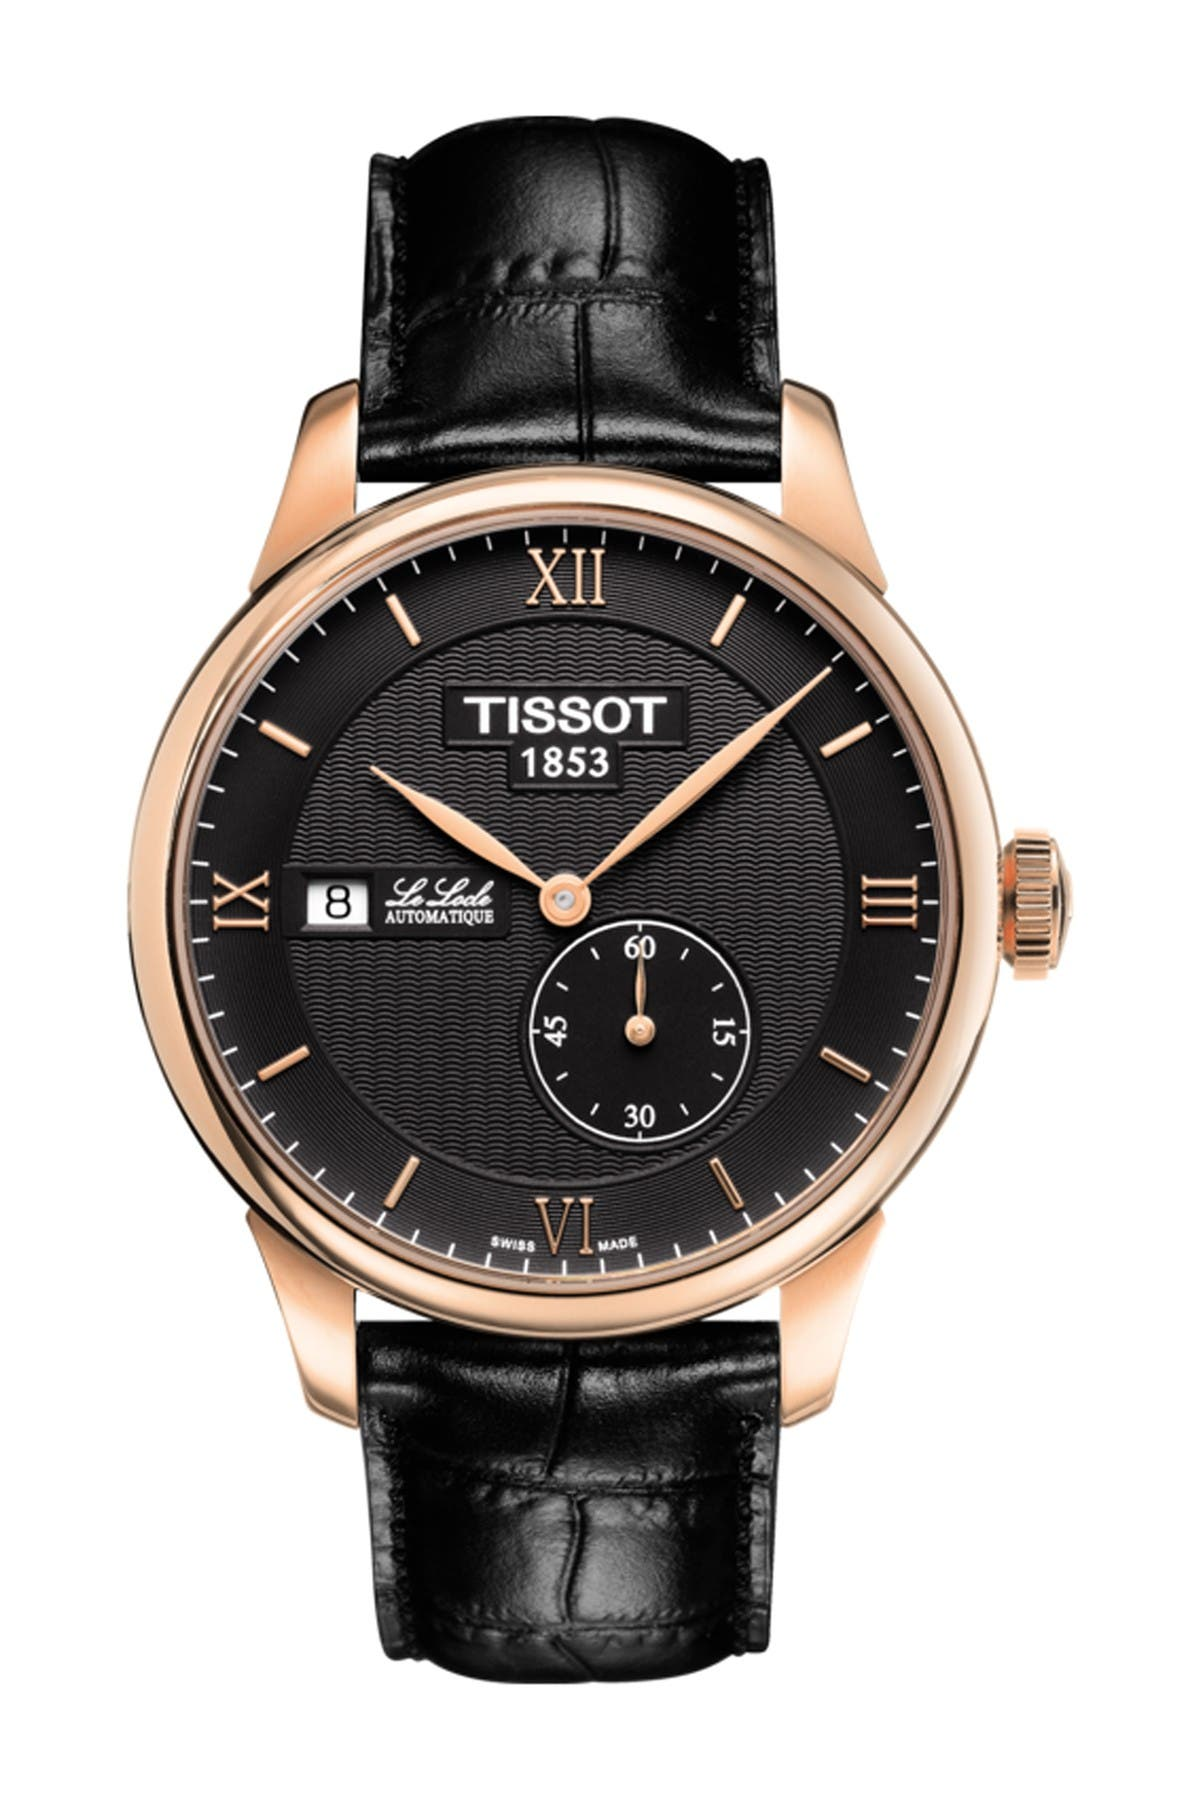 Image of Tissot Men's Le Locle Automatic Petite Seconde Watch, 39.3mm